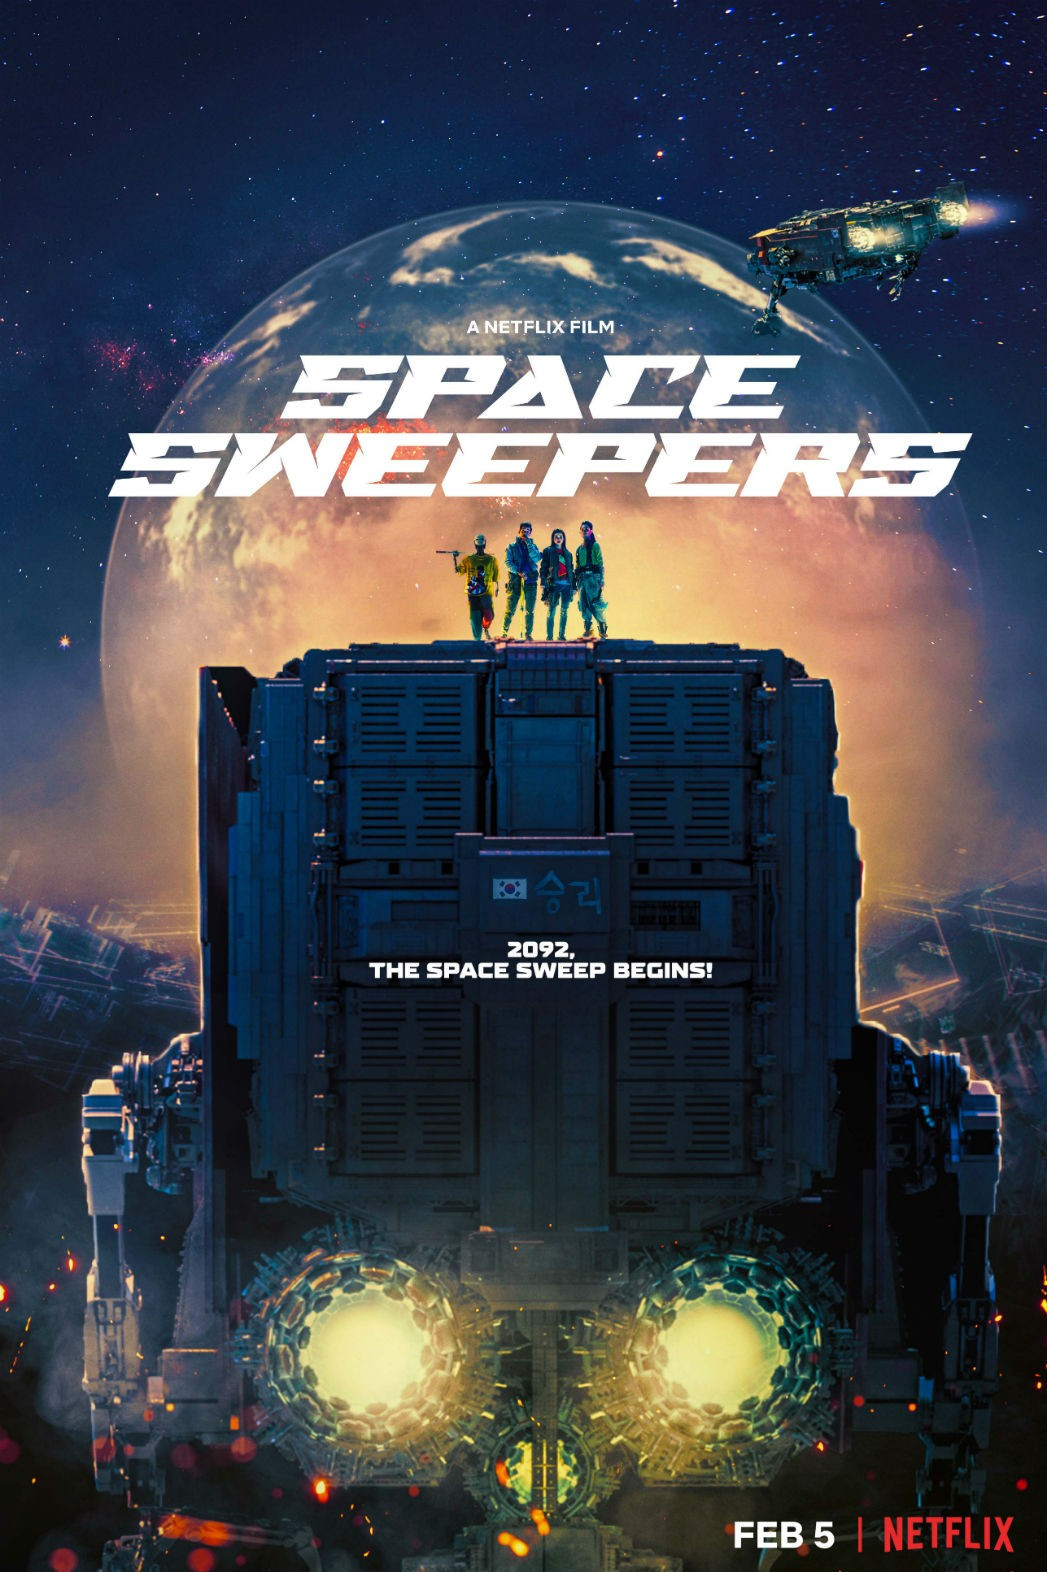 Neflix Space Sweepers poster: